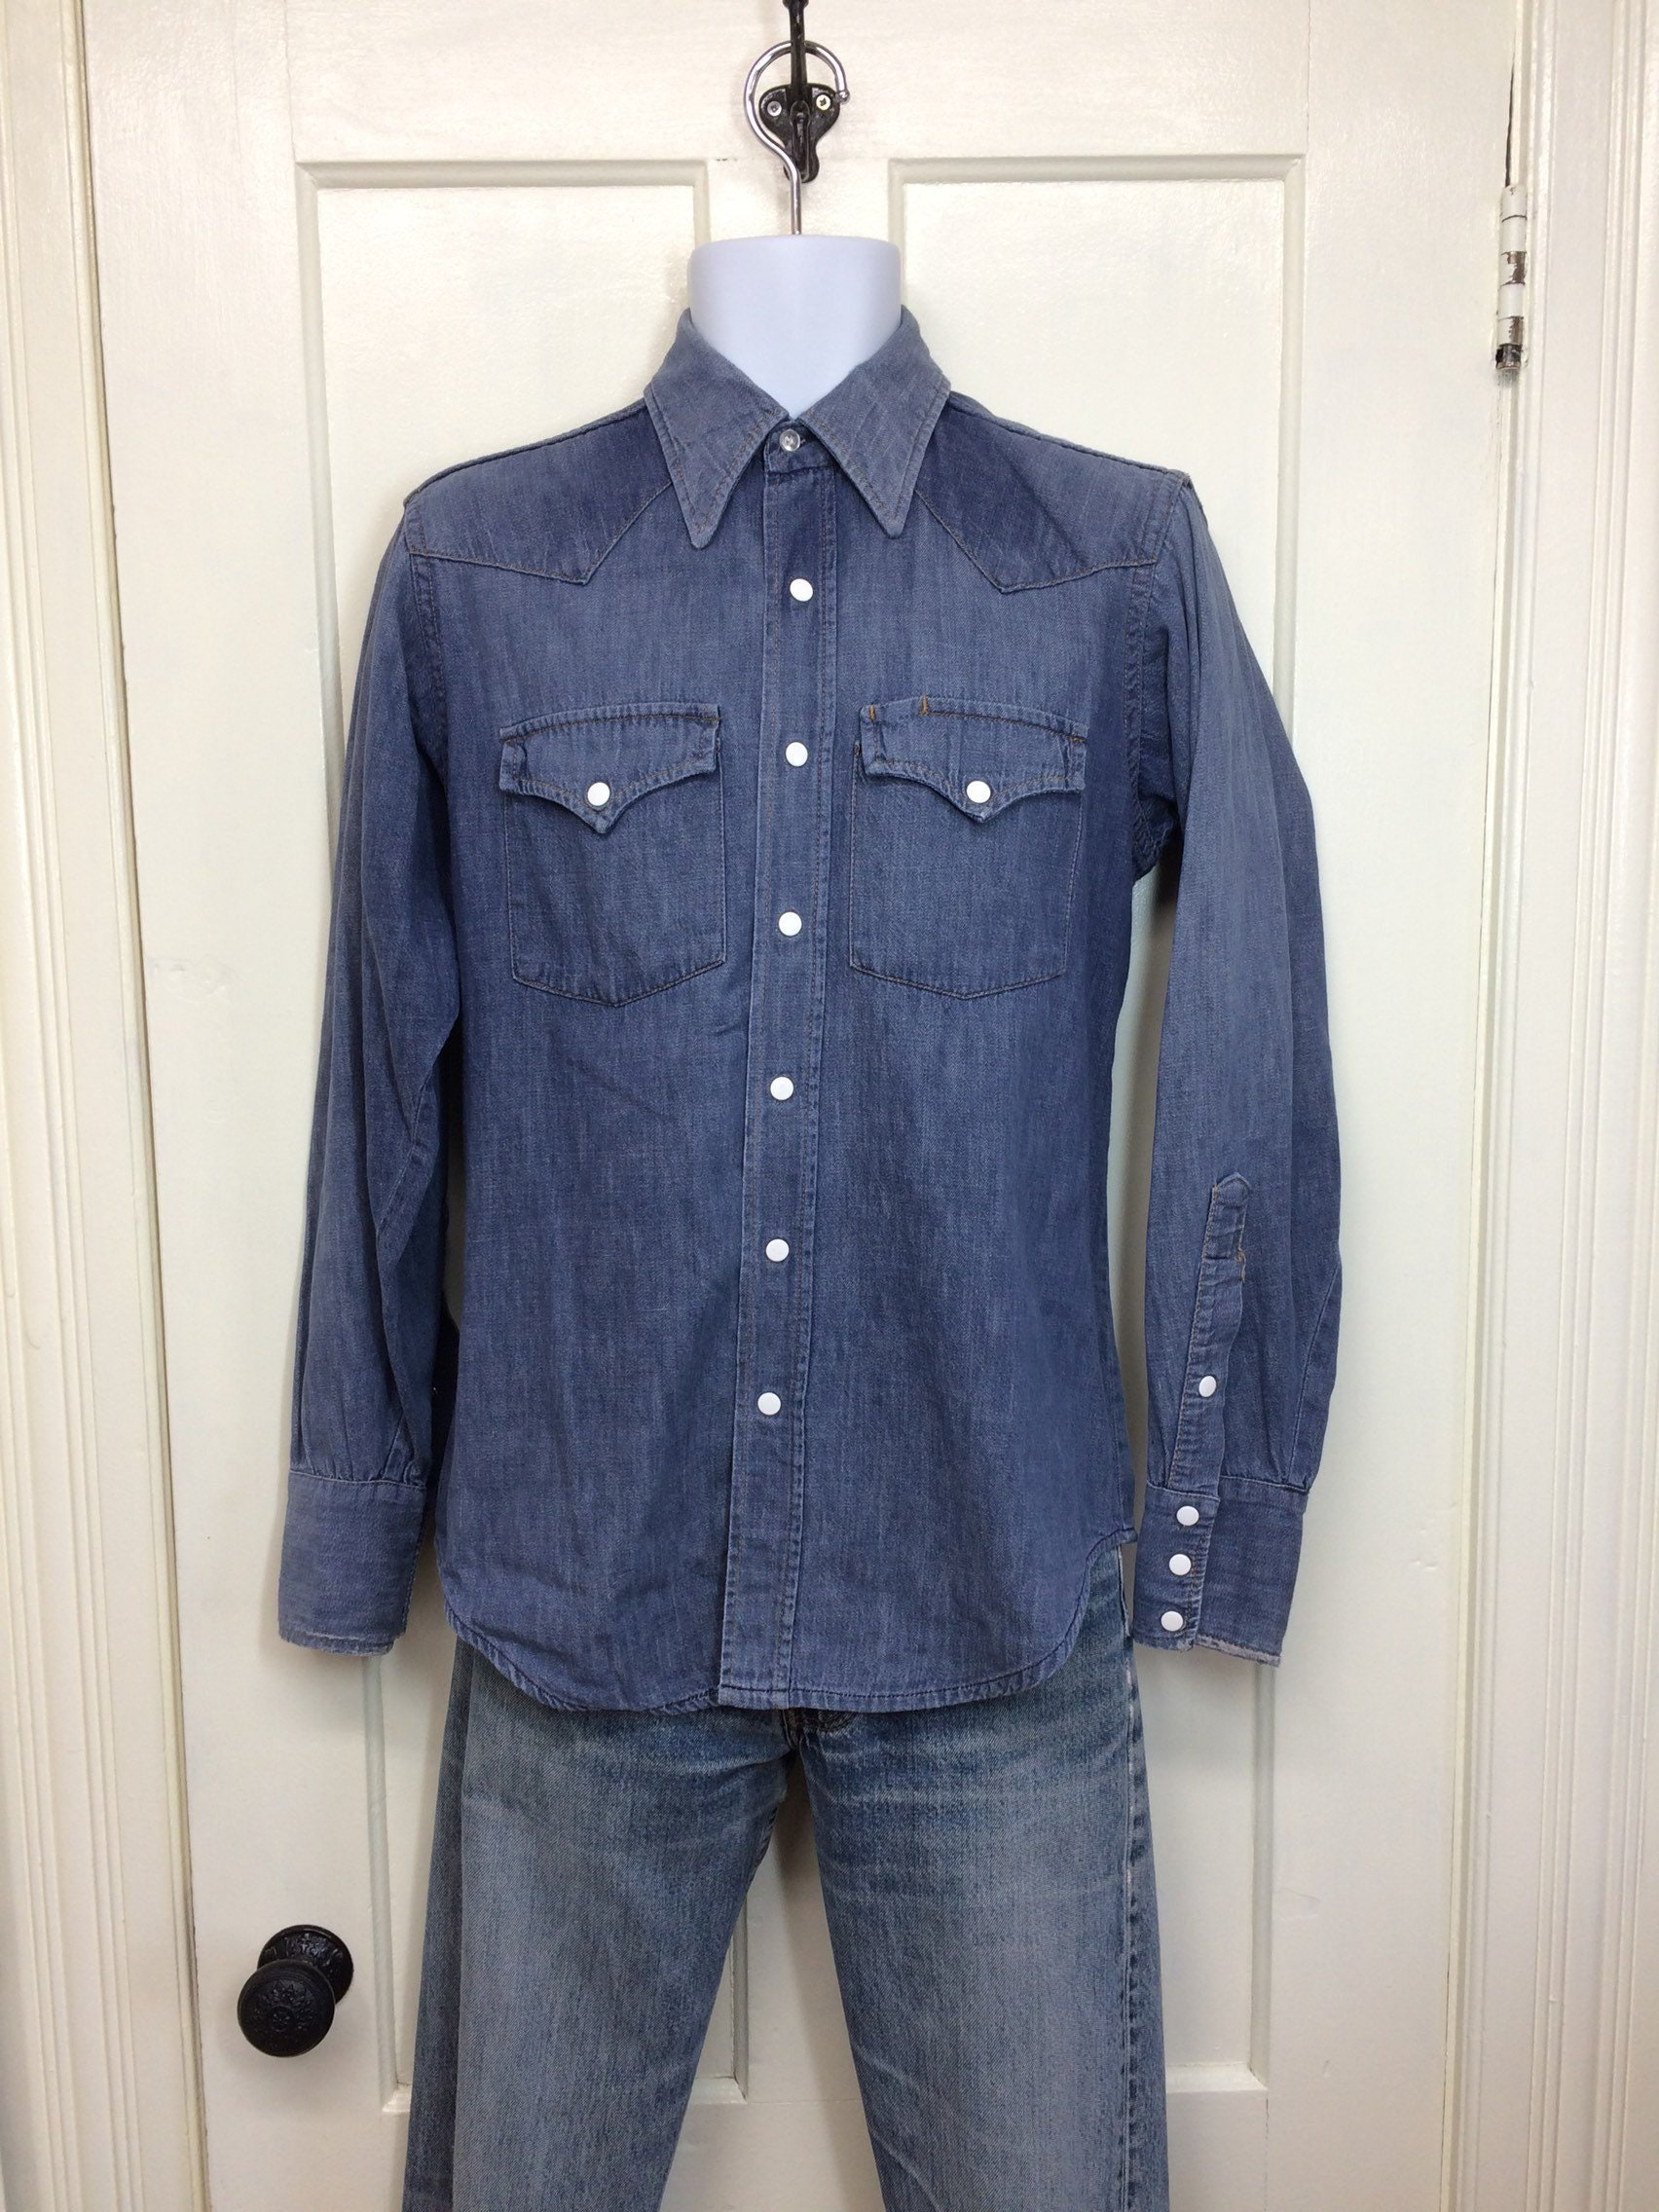 fb999ea6b8 1960s Sears Roebucks faded blue denim jean western work shirt size ...